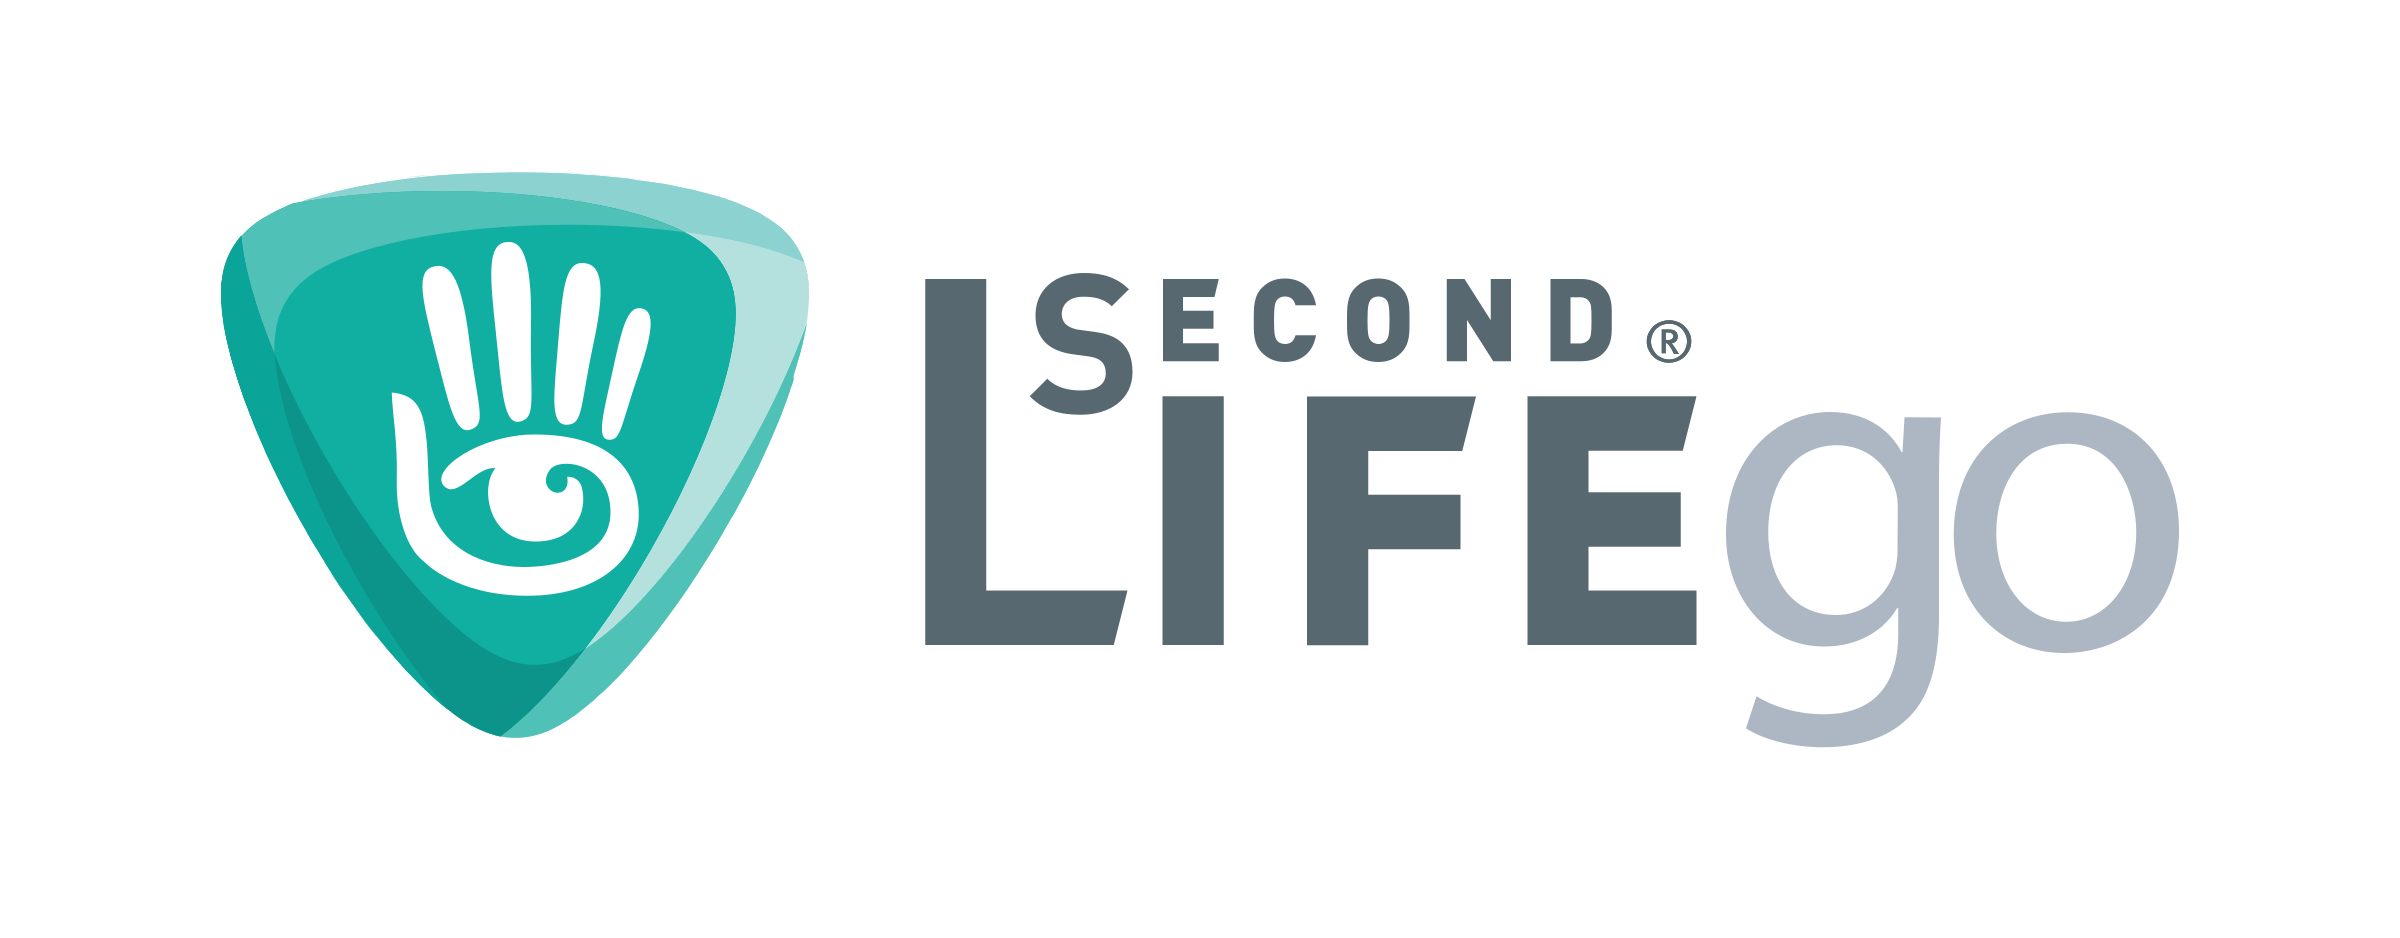 Second Life GO Logo PNG Transparent & SVG Vector.